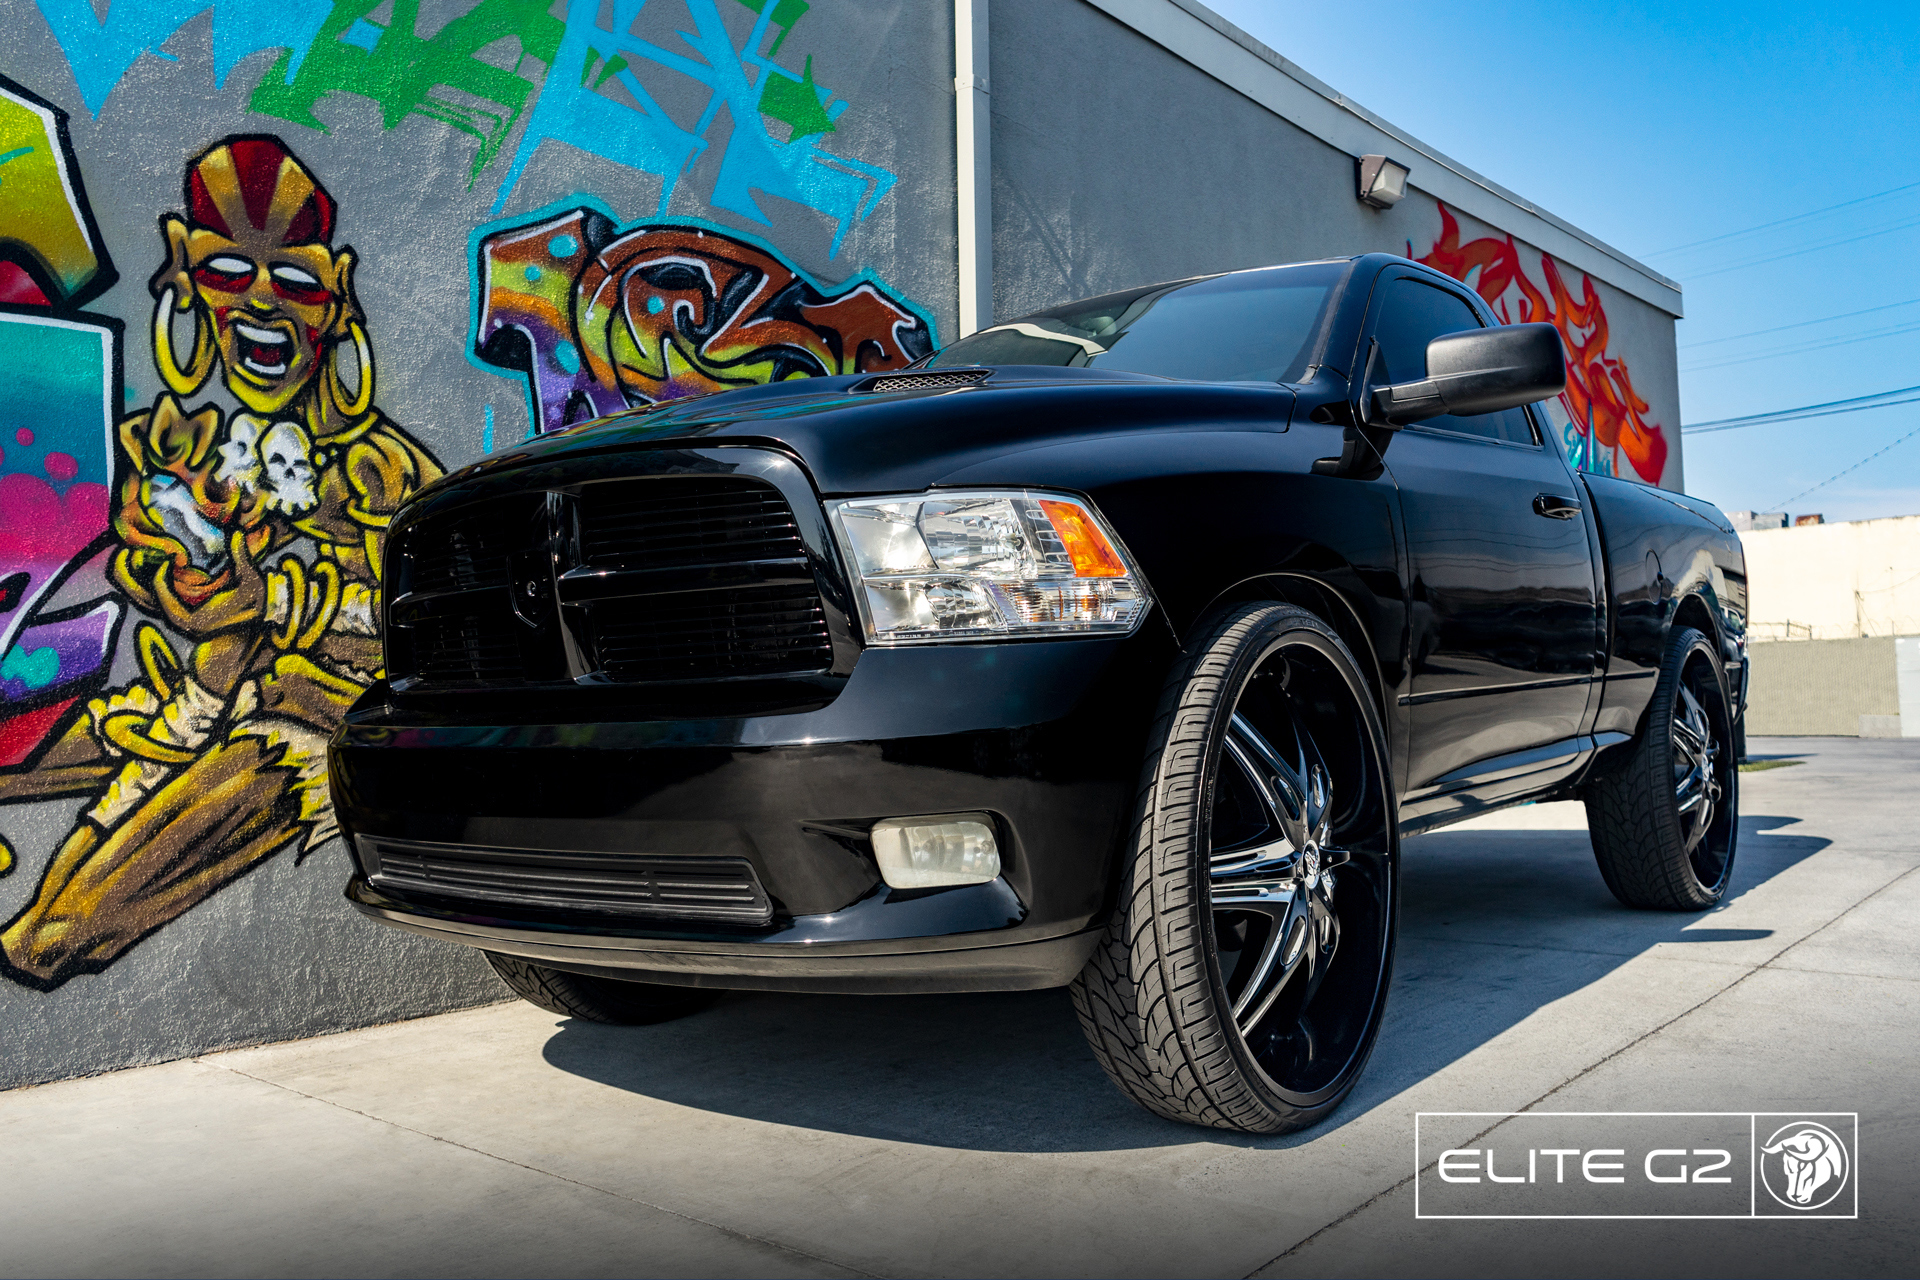 Elite G2 32″ RAM 1500 Diablo Wheels